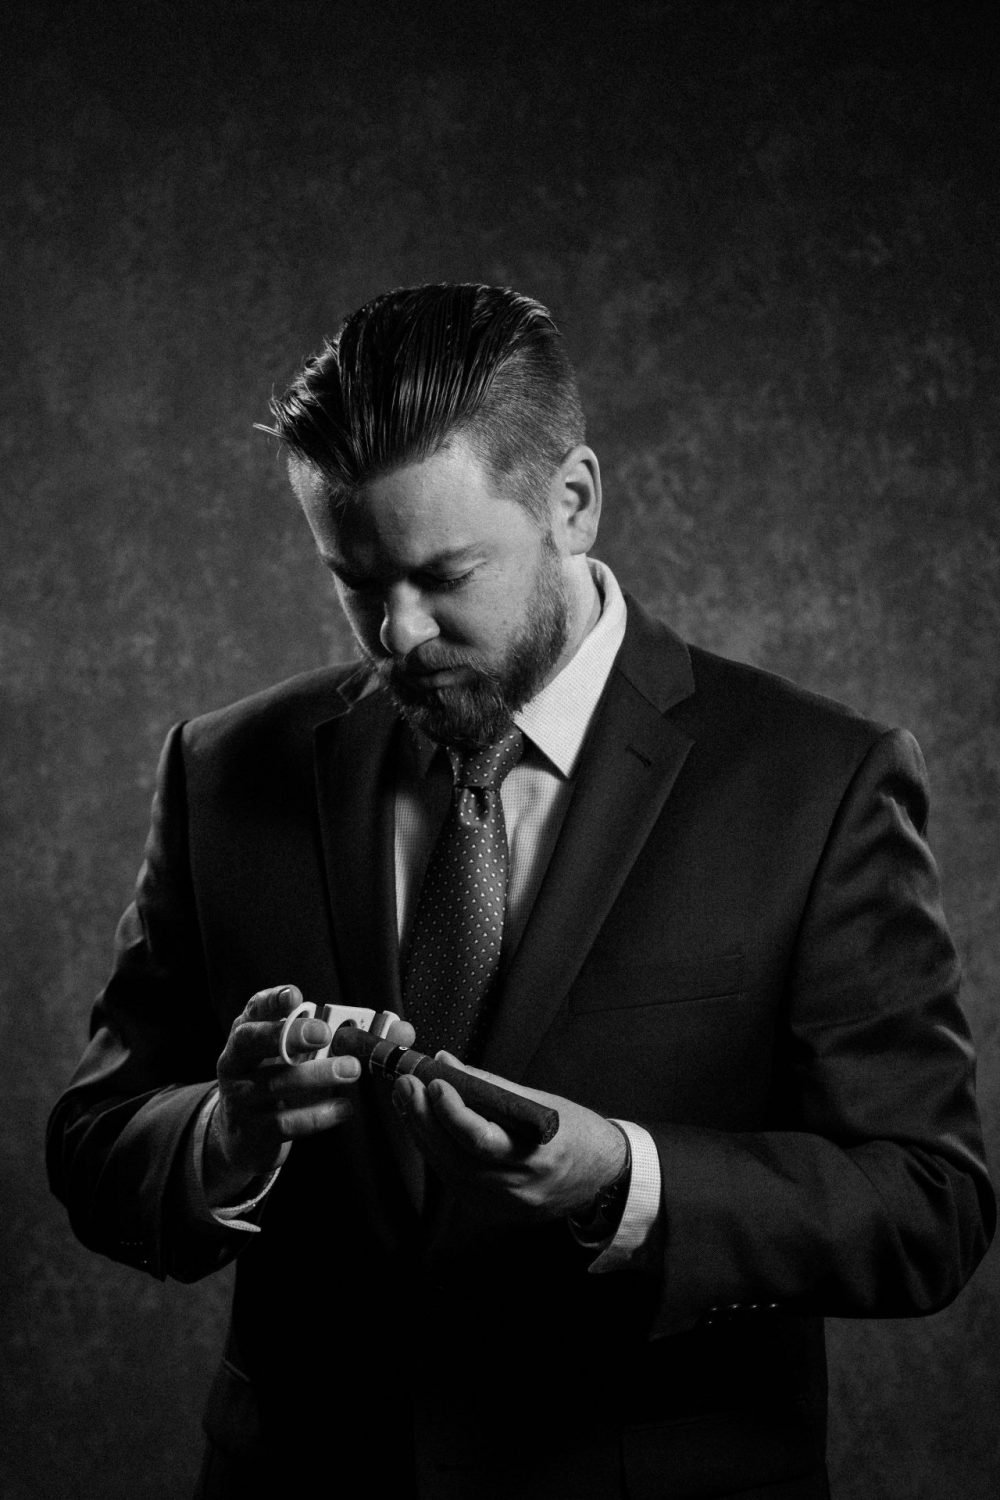 Black and white photo of the groom